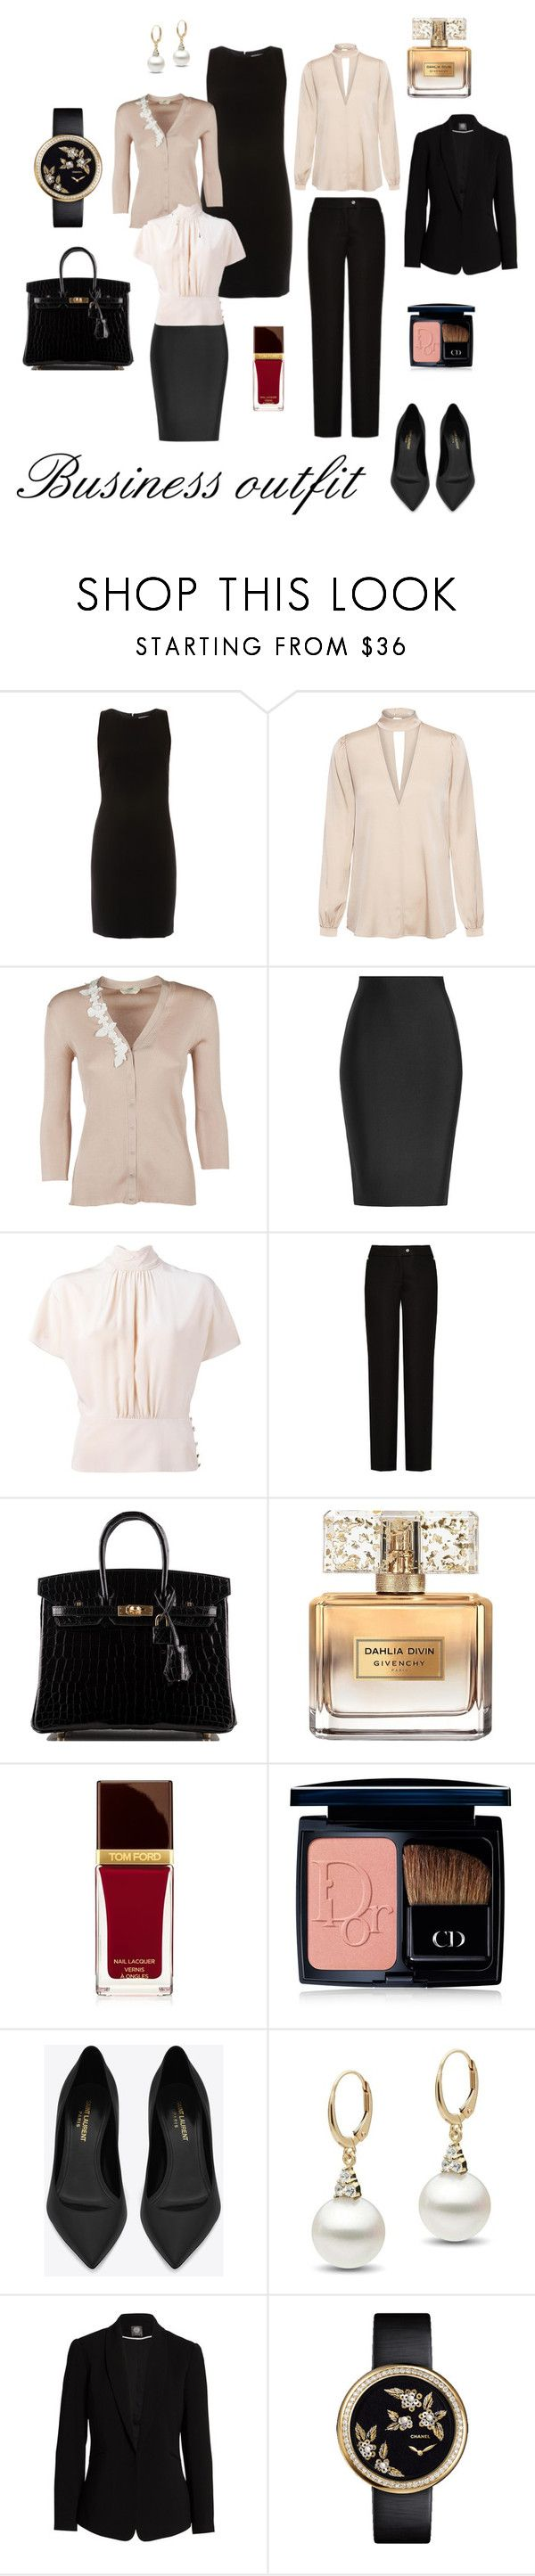 """""""business outfit II."""" by marcela-plocher on Polyvore featuring ELLIOTT LAUREN, A.L.C., Fendi, Roland Mouret, RED Valentino, Acne Studios, Hermès, Givenchy, Tom Ford and Christian Dior"""